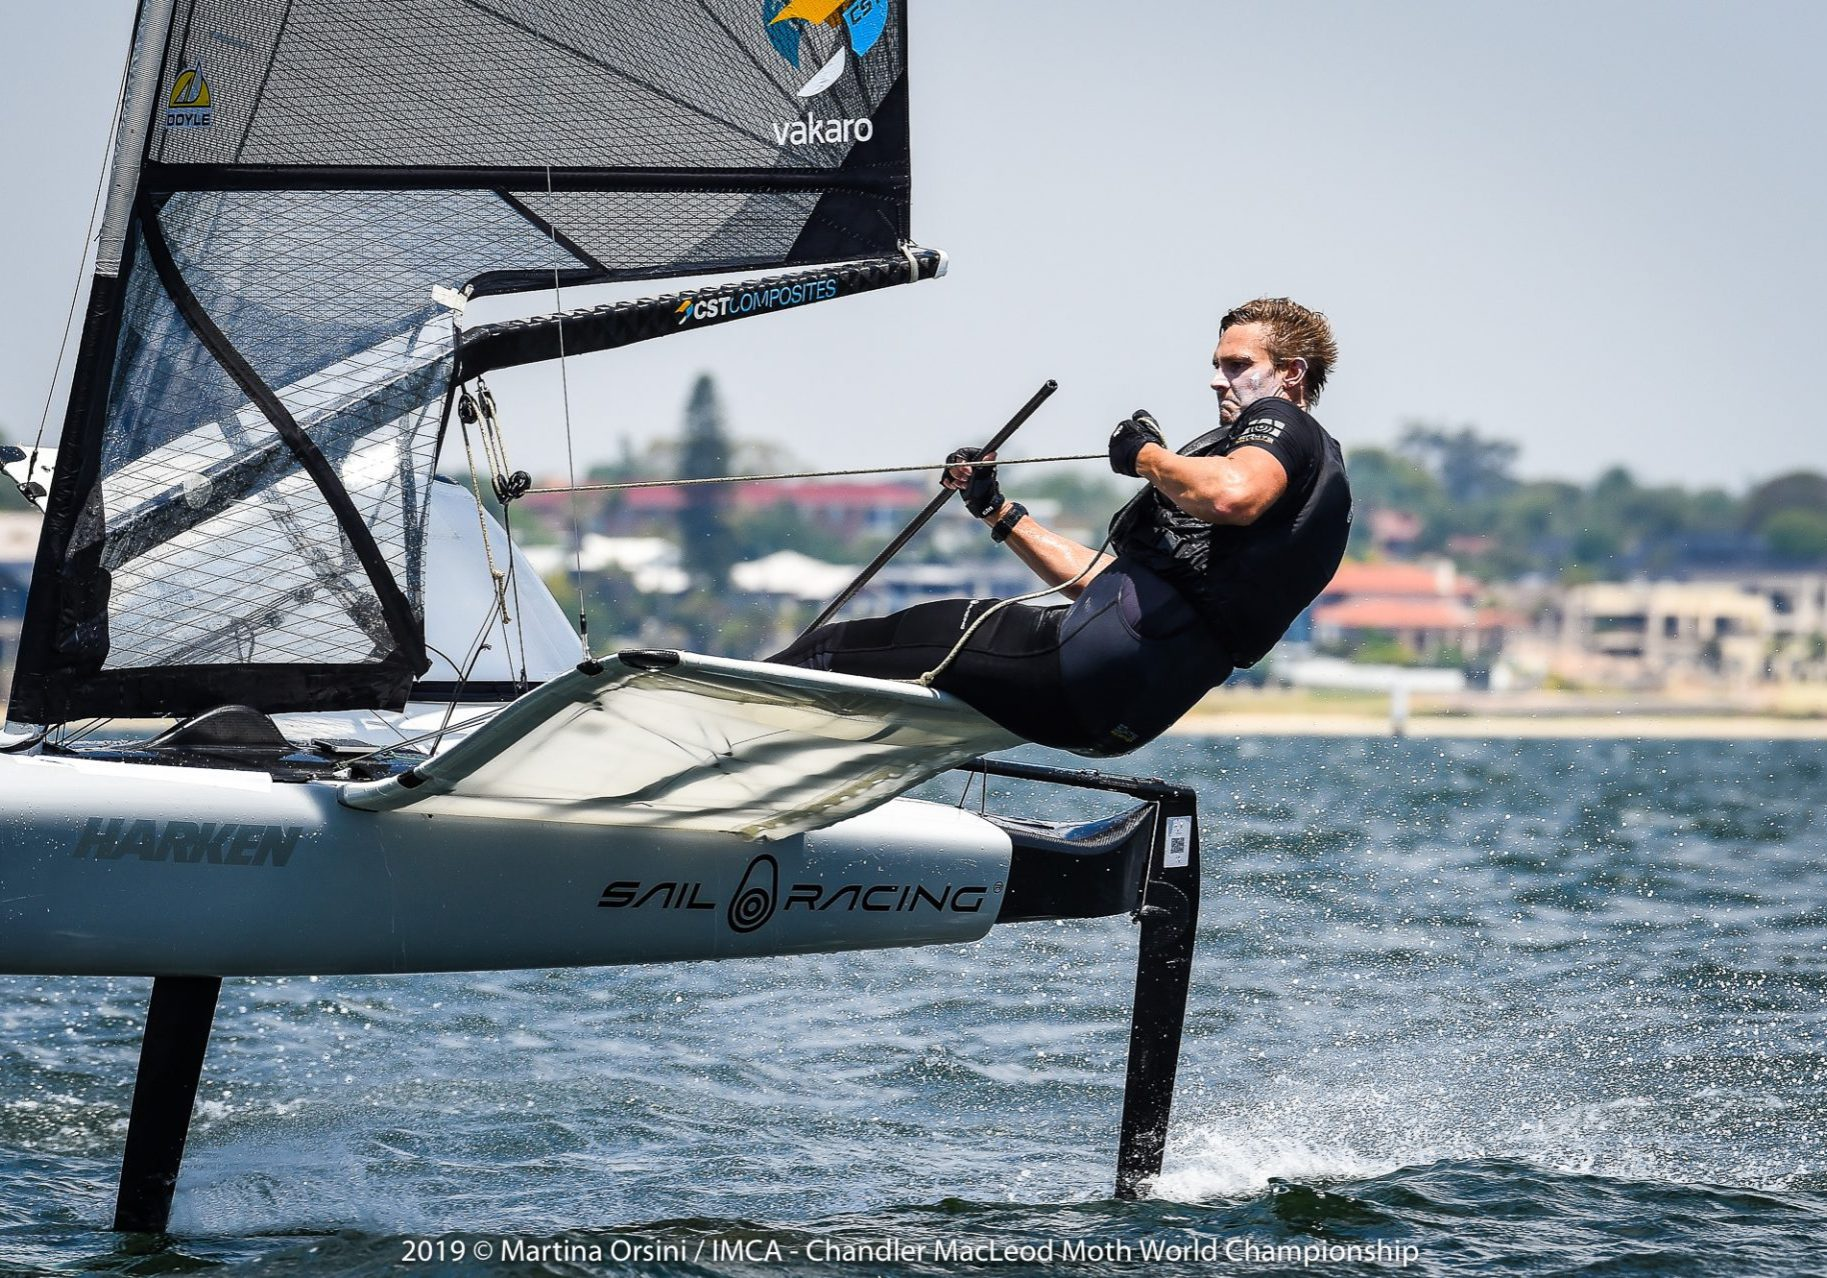 Kyle-Langford-sits-in-second-overall-after-the-penultimate-day-of-the-Chandler-Macleod-Moth-Worlds